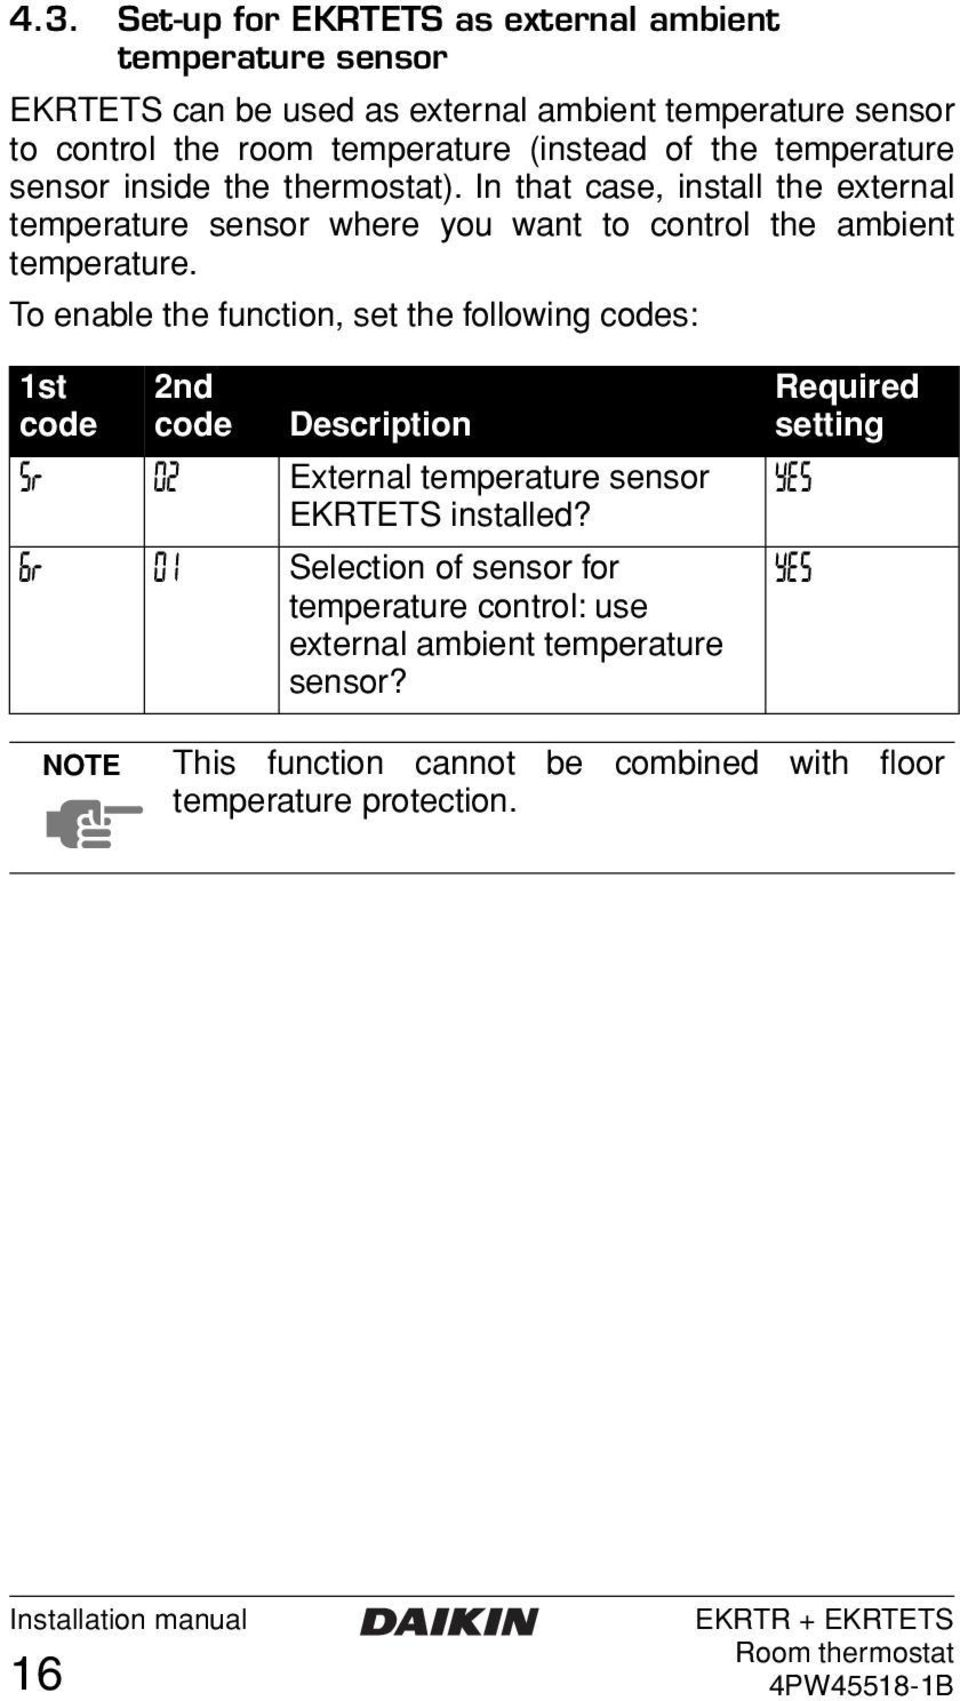 In that case, install the external temperature sensor where you want to control the ambient temperature.